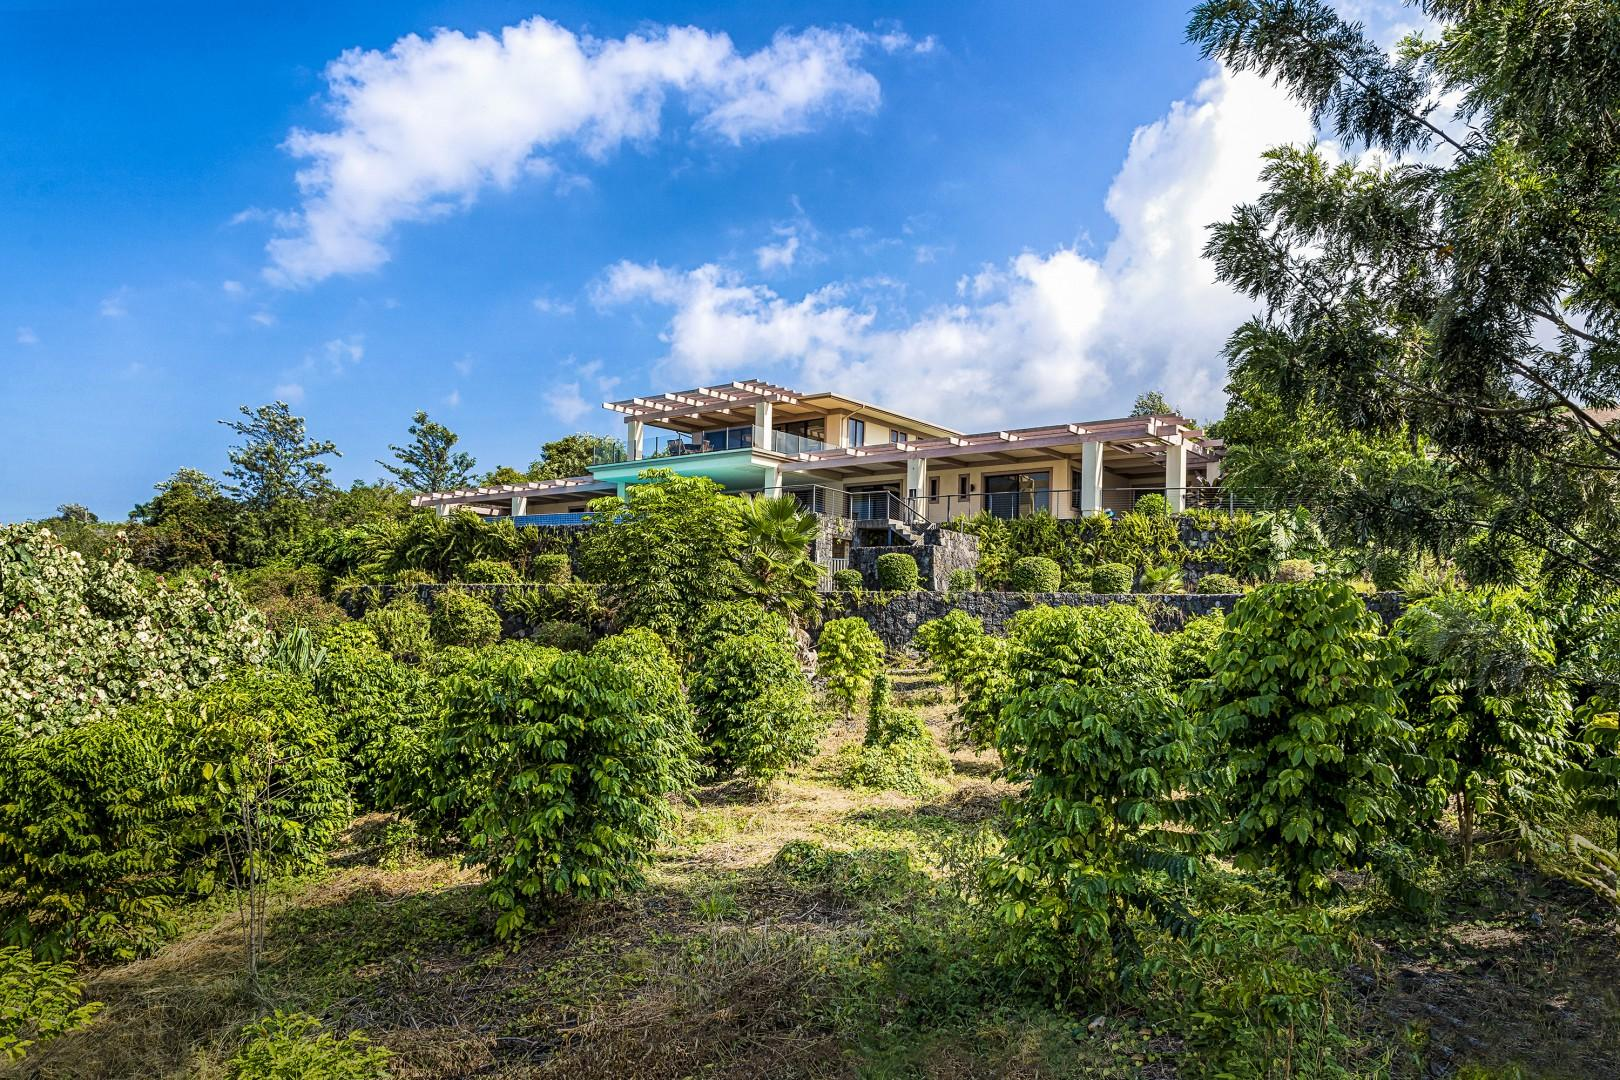 This home sits on a 3 acre parcel, full of Coffee